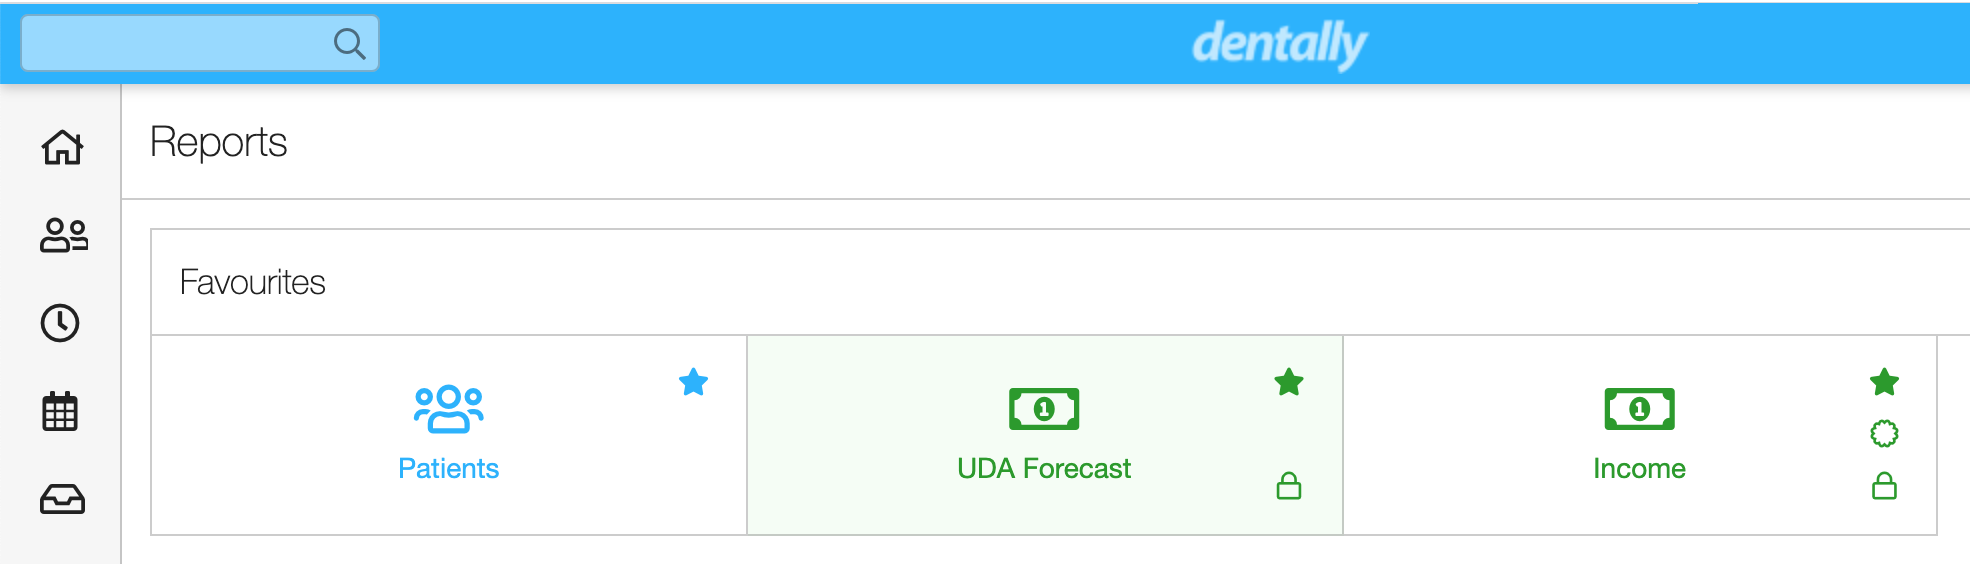 Dentally Screeshot - Patients, UDA forecast, Income as favourites